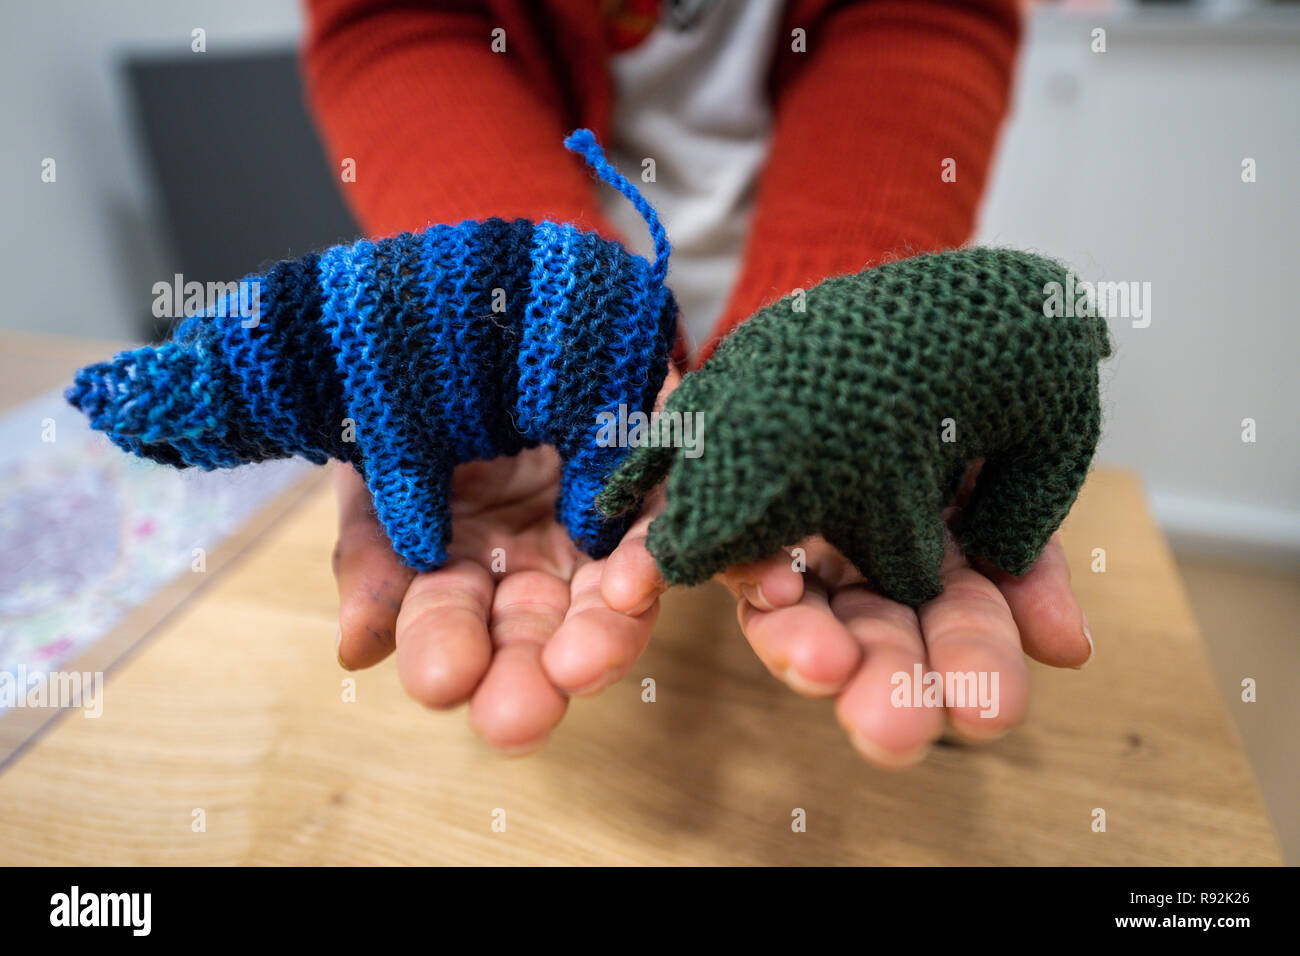 """Oldenburg, Germany. 18th Dec, 2018. A woman is holding small wool piglets called Kohlfietjes in her hands. Senior women in a housing project produce these by hand. (to dpa """"From Steckenpferd to Löwenhelm - this is how Niedersachsen markets itself"""" from 19.12.2018) Credit: Mohssen Assanimoghaddam/dpa/Alamy Live News Stock Photo"""